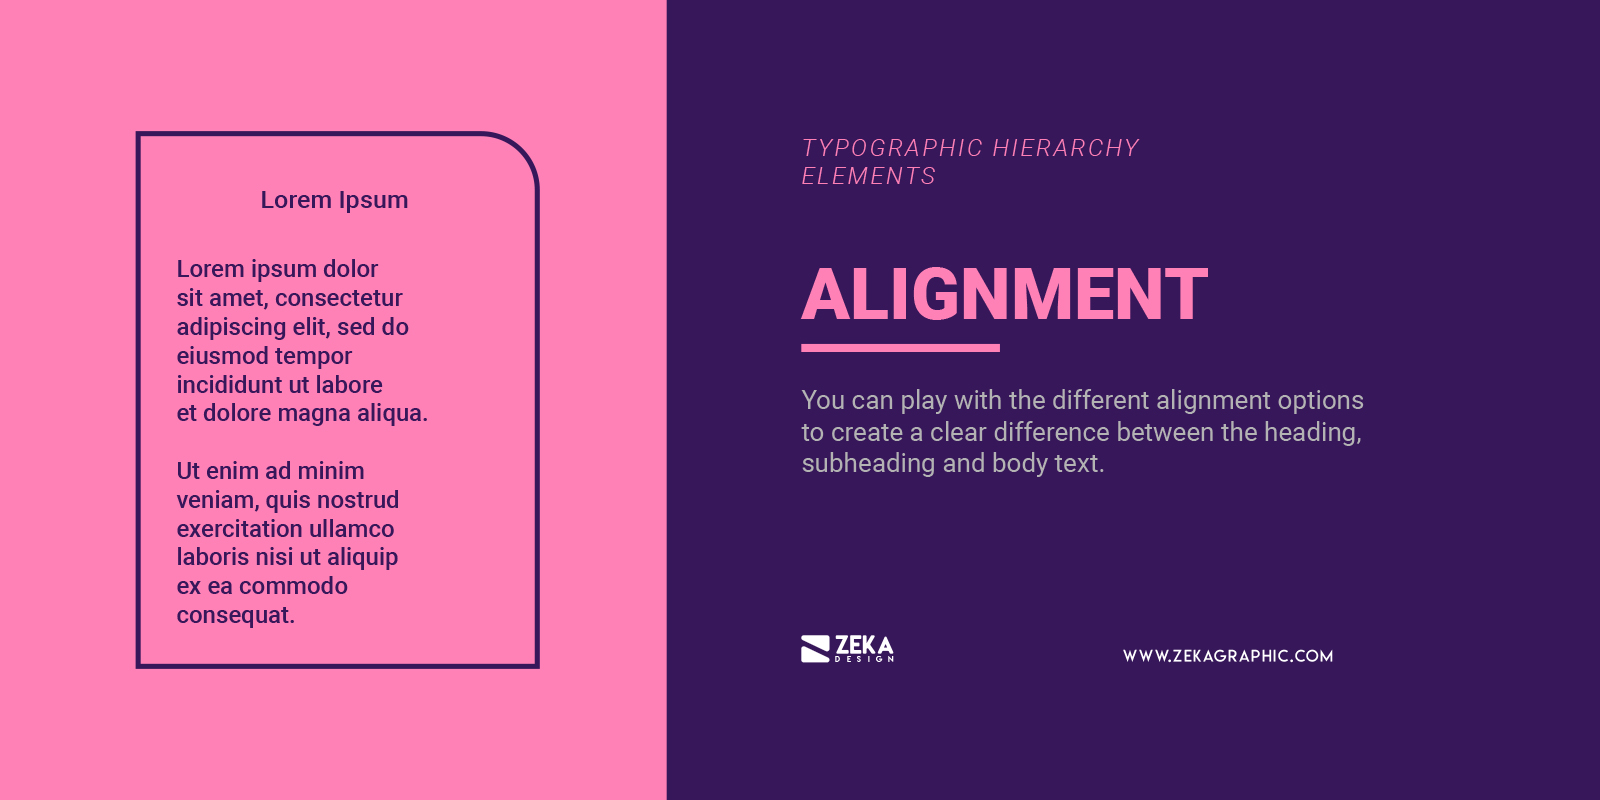 Text Alignment for Typographic Hierarchy in Graphic Design